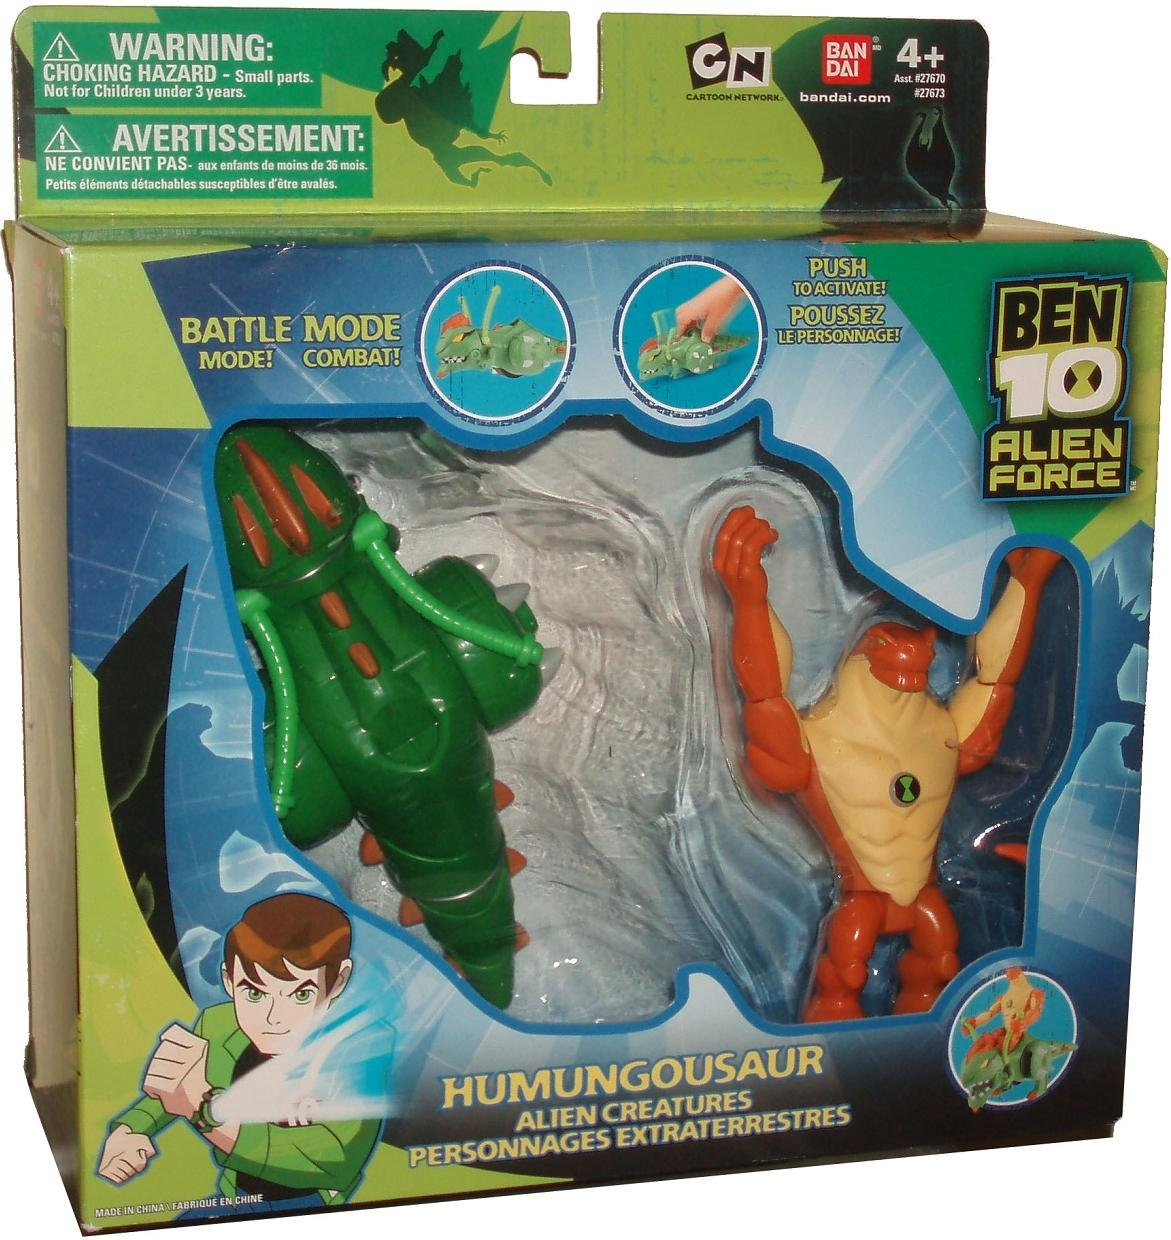 Ben 10 Alien Force Alien Creatures - Humungousaur